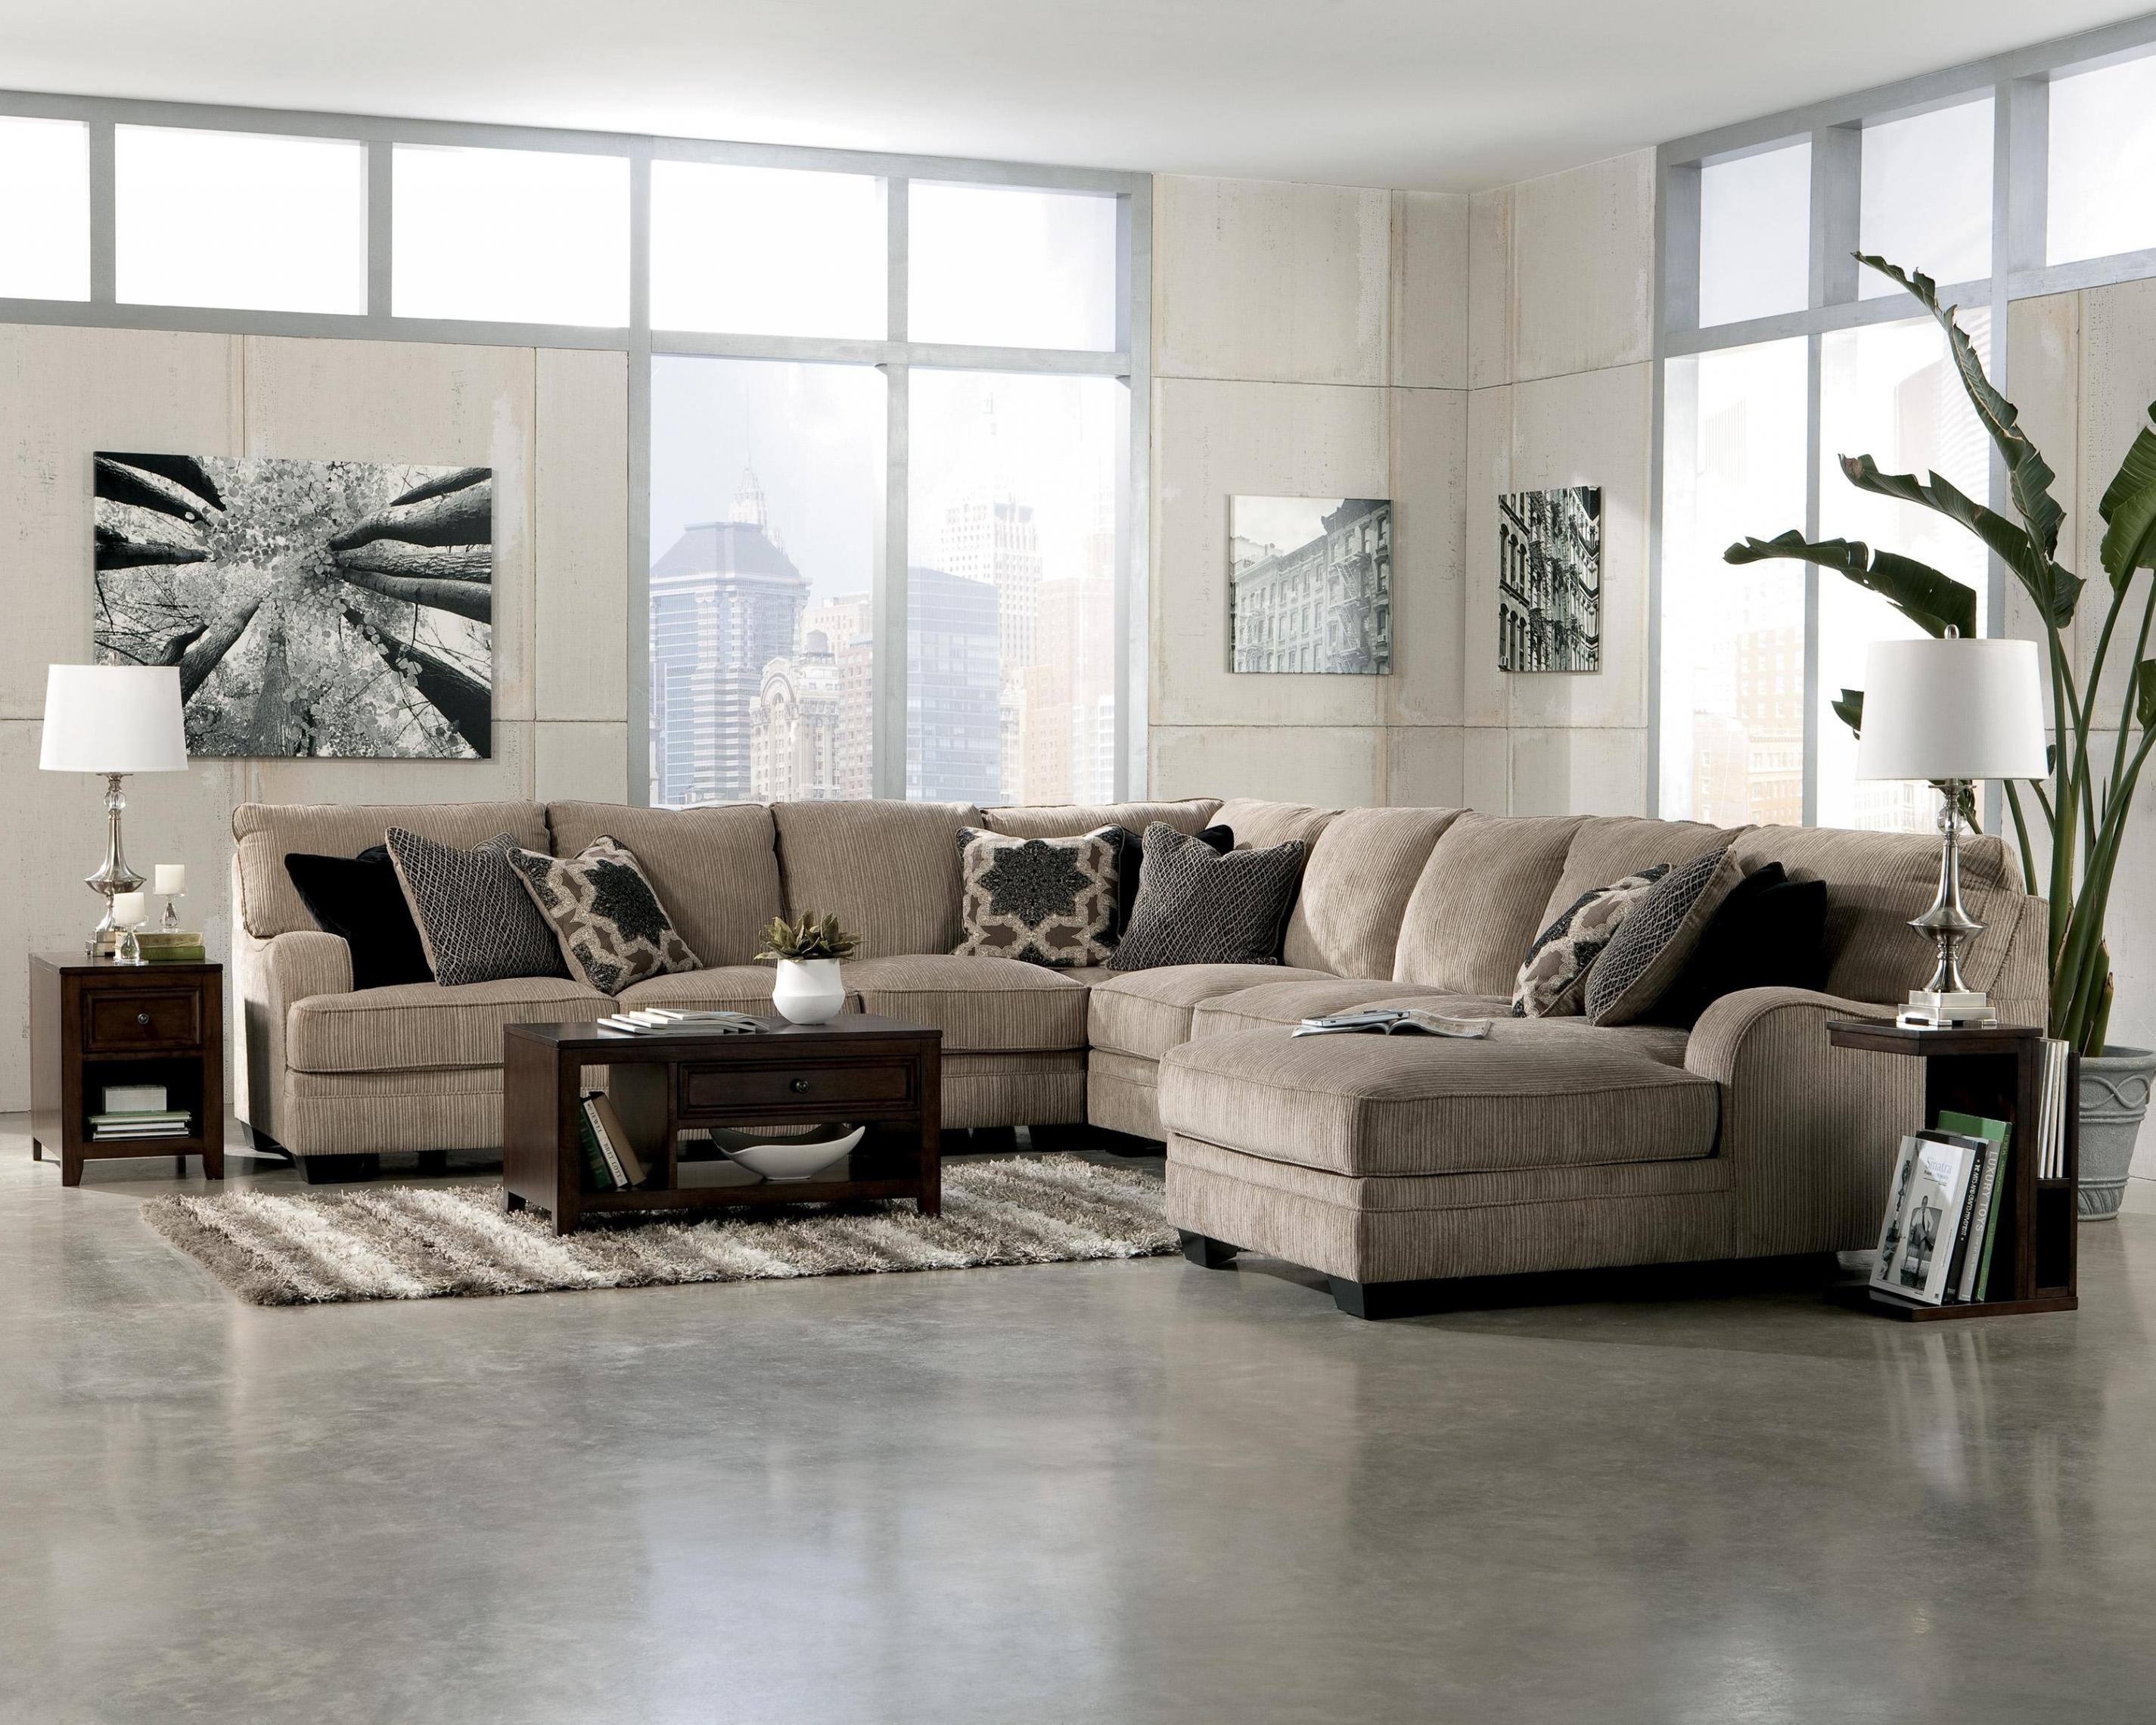 Furniture: Small Sectional Sofas For Small Spaces | Craigslist Pertaining To Craigslist Sectional Sofas (Image 8 of 20)